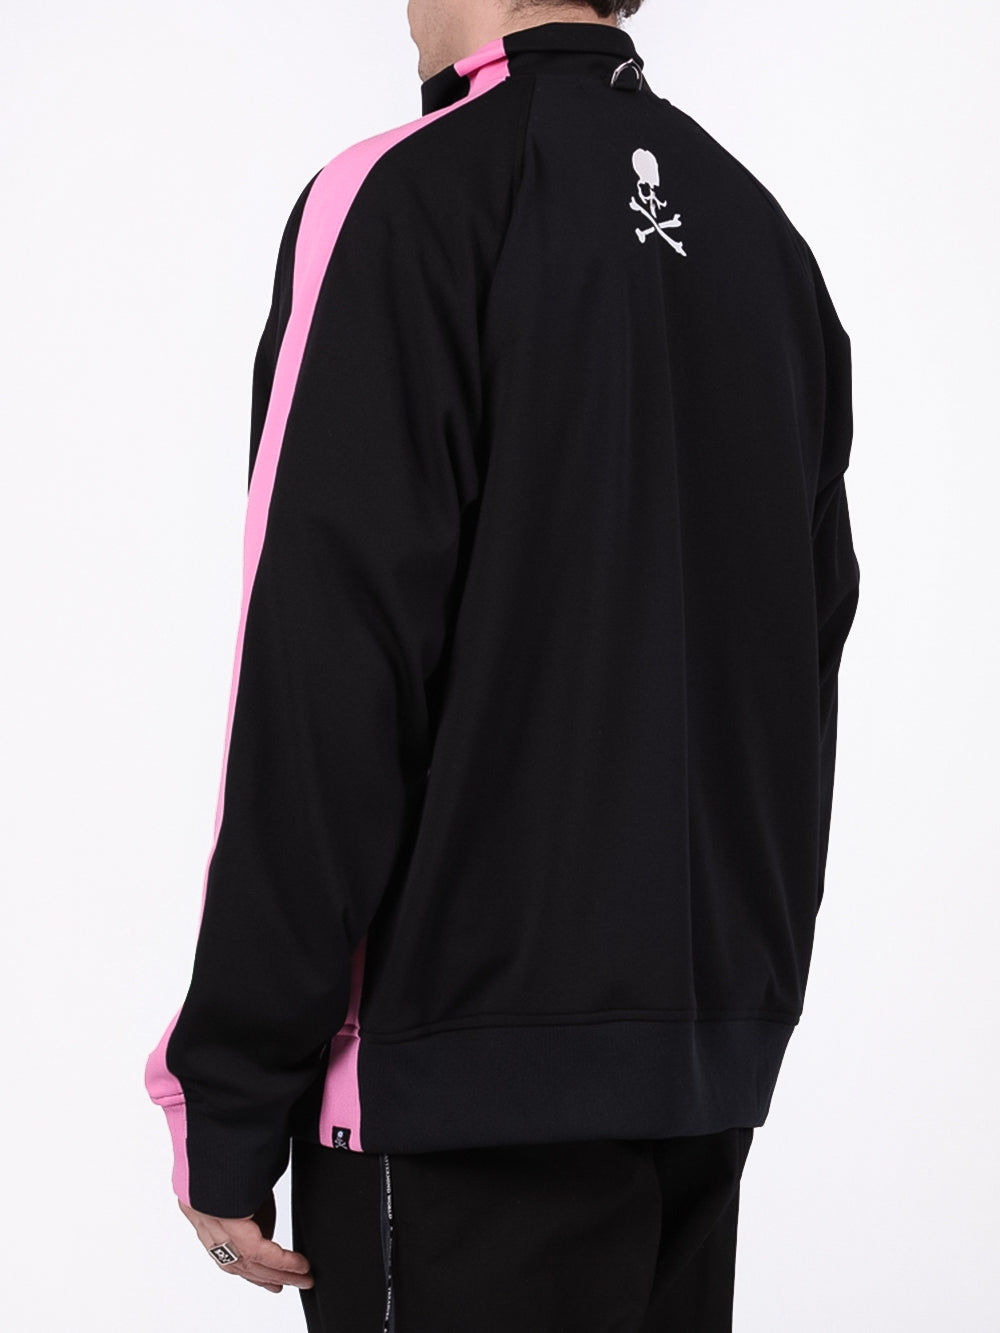 Black & Pink Striped Track Jacket